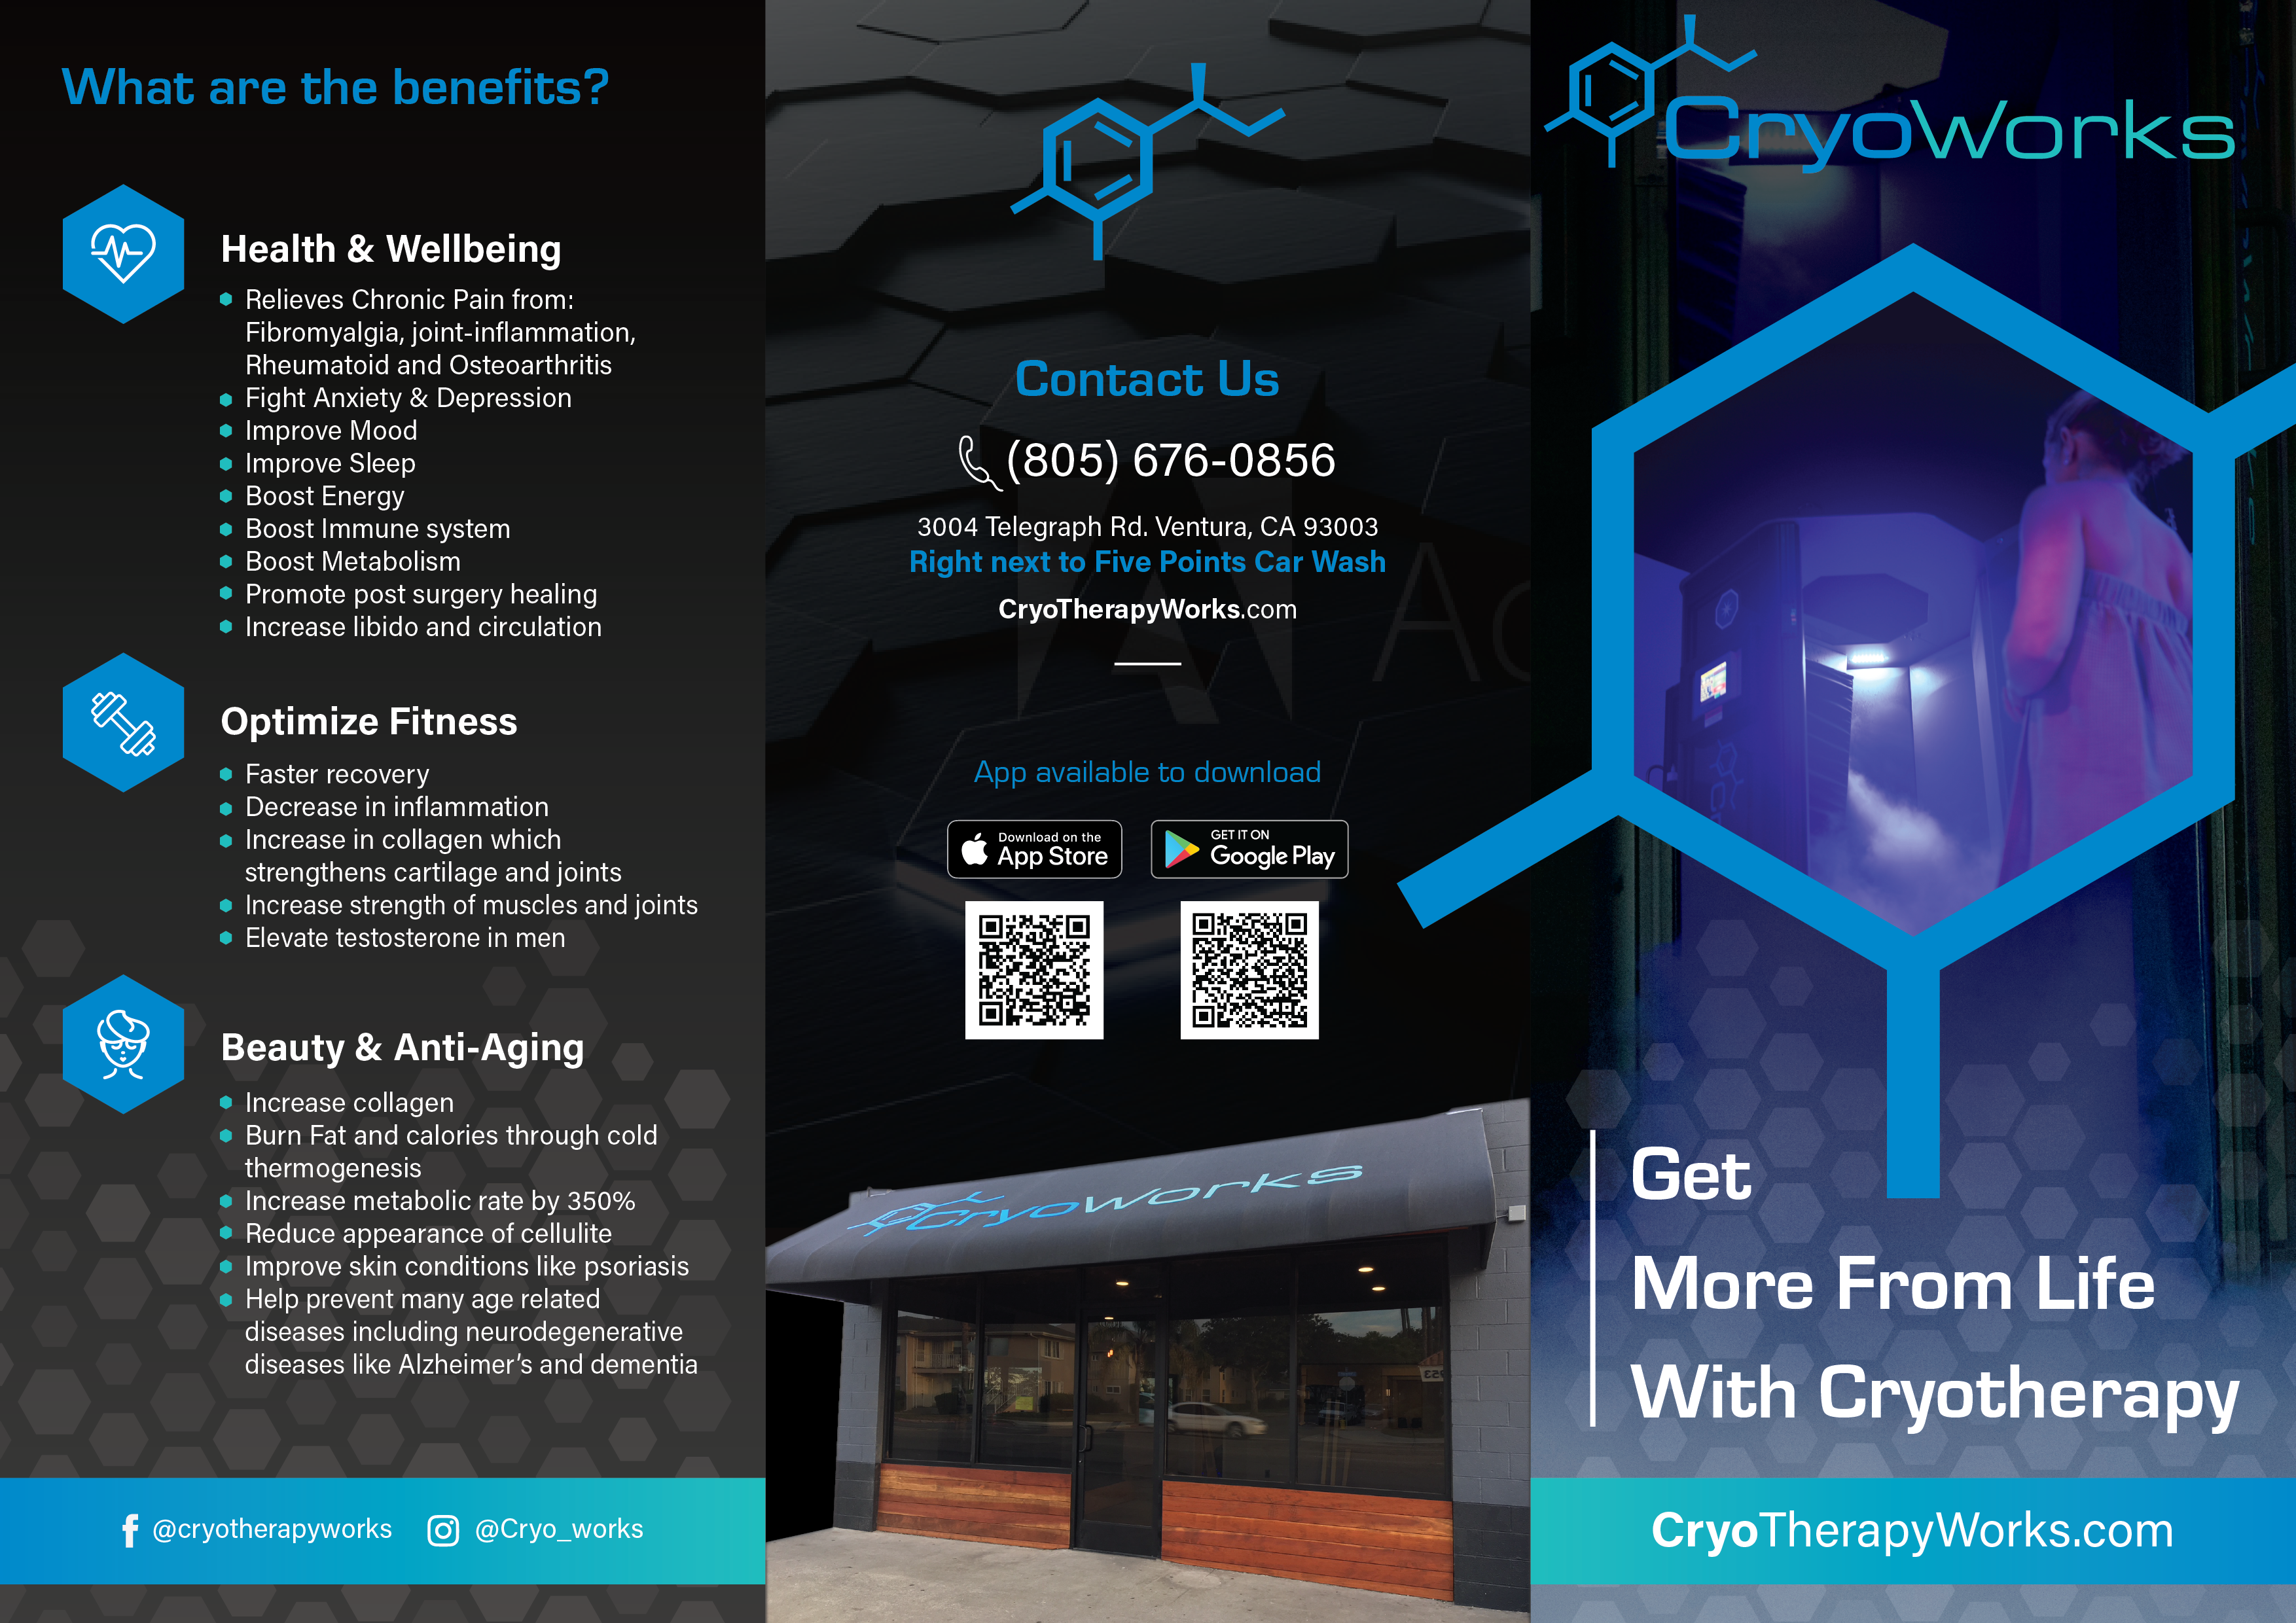 Clean, simple, and educational brochure needed for Cryotherapy business.